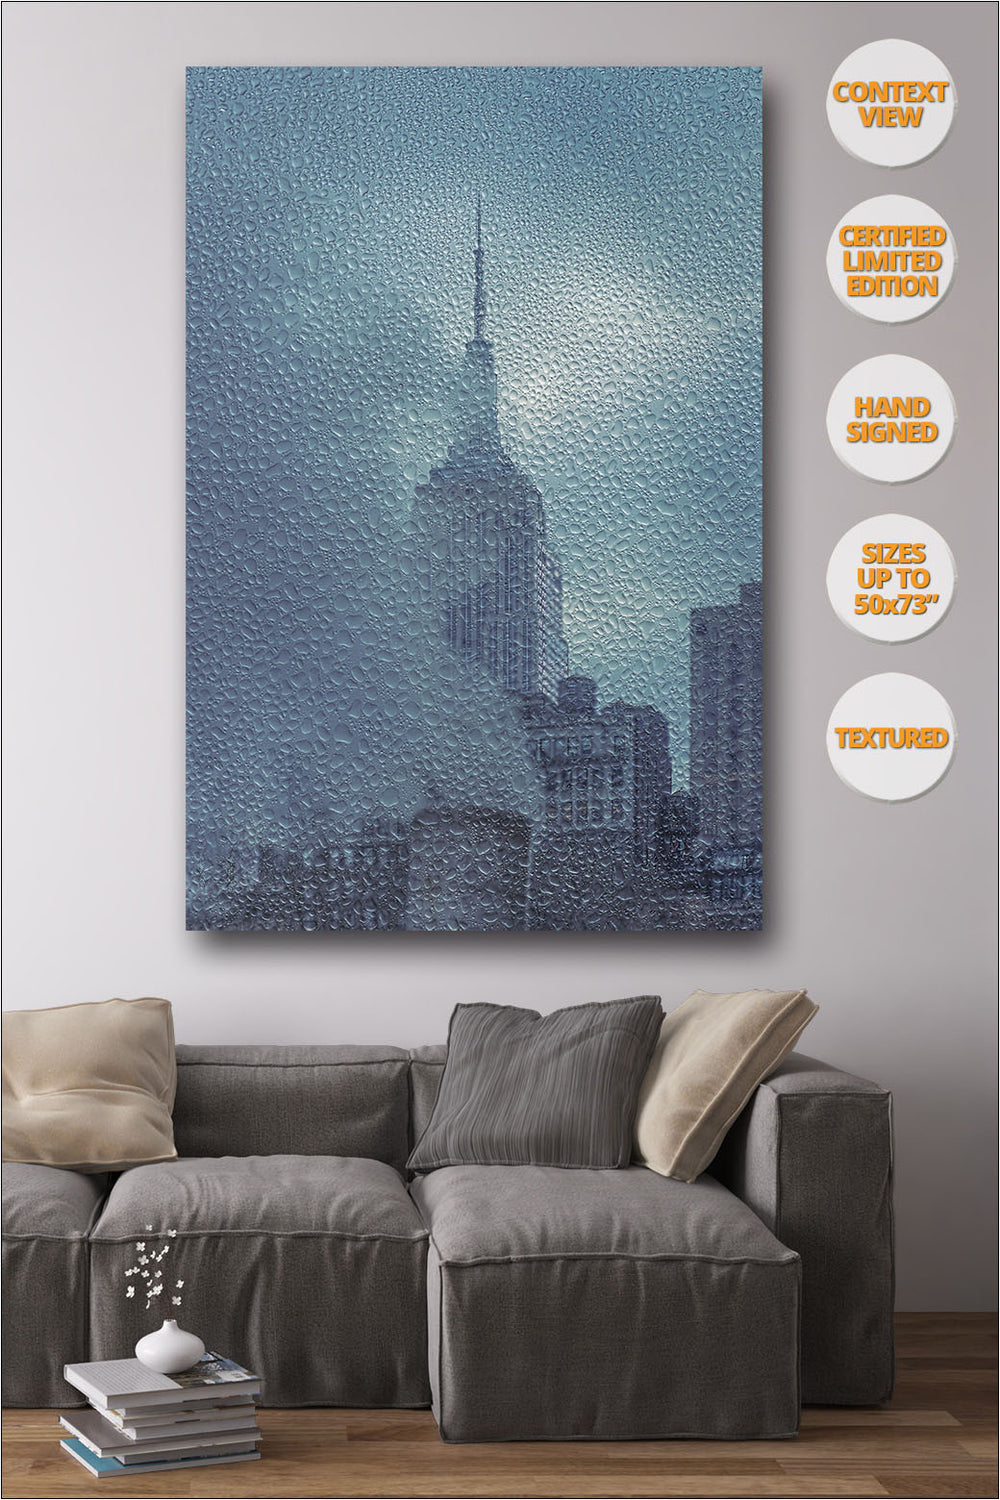 Empire State under the Rain, New York. Series 1/4. | Living room view.